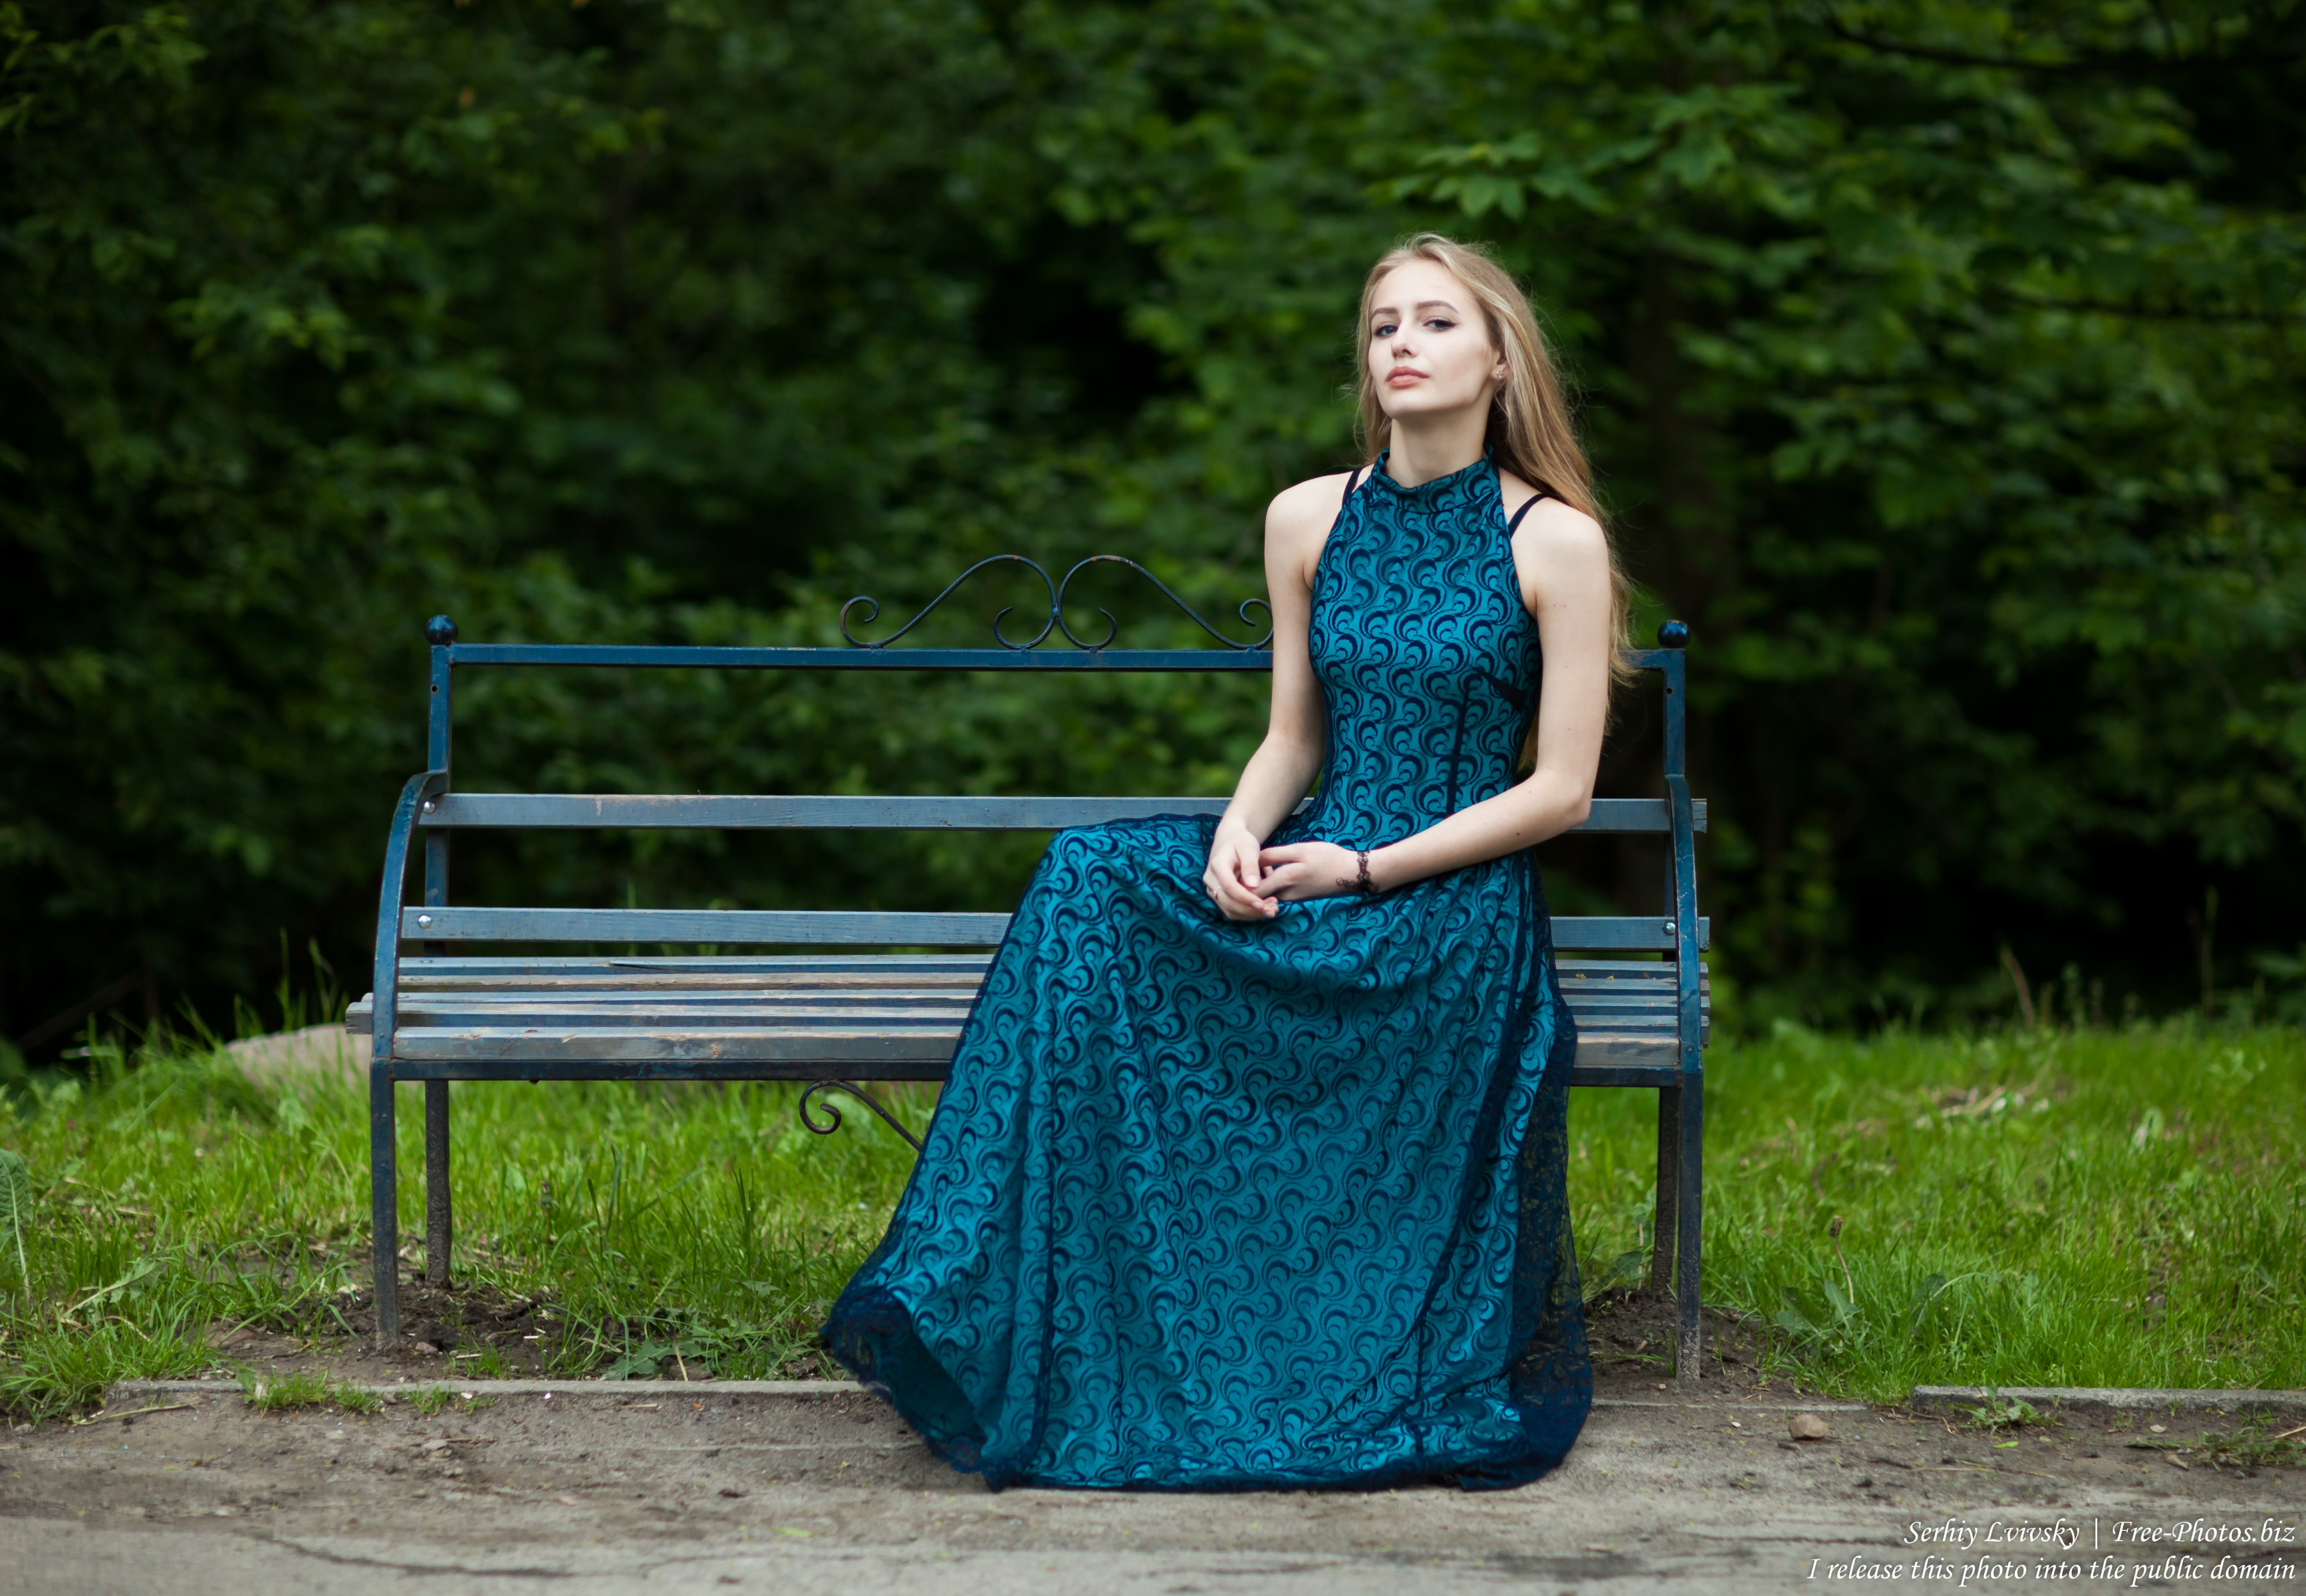 Photo of Lila - a 15-year-old natural blonde girl